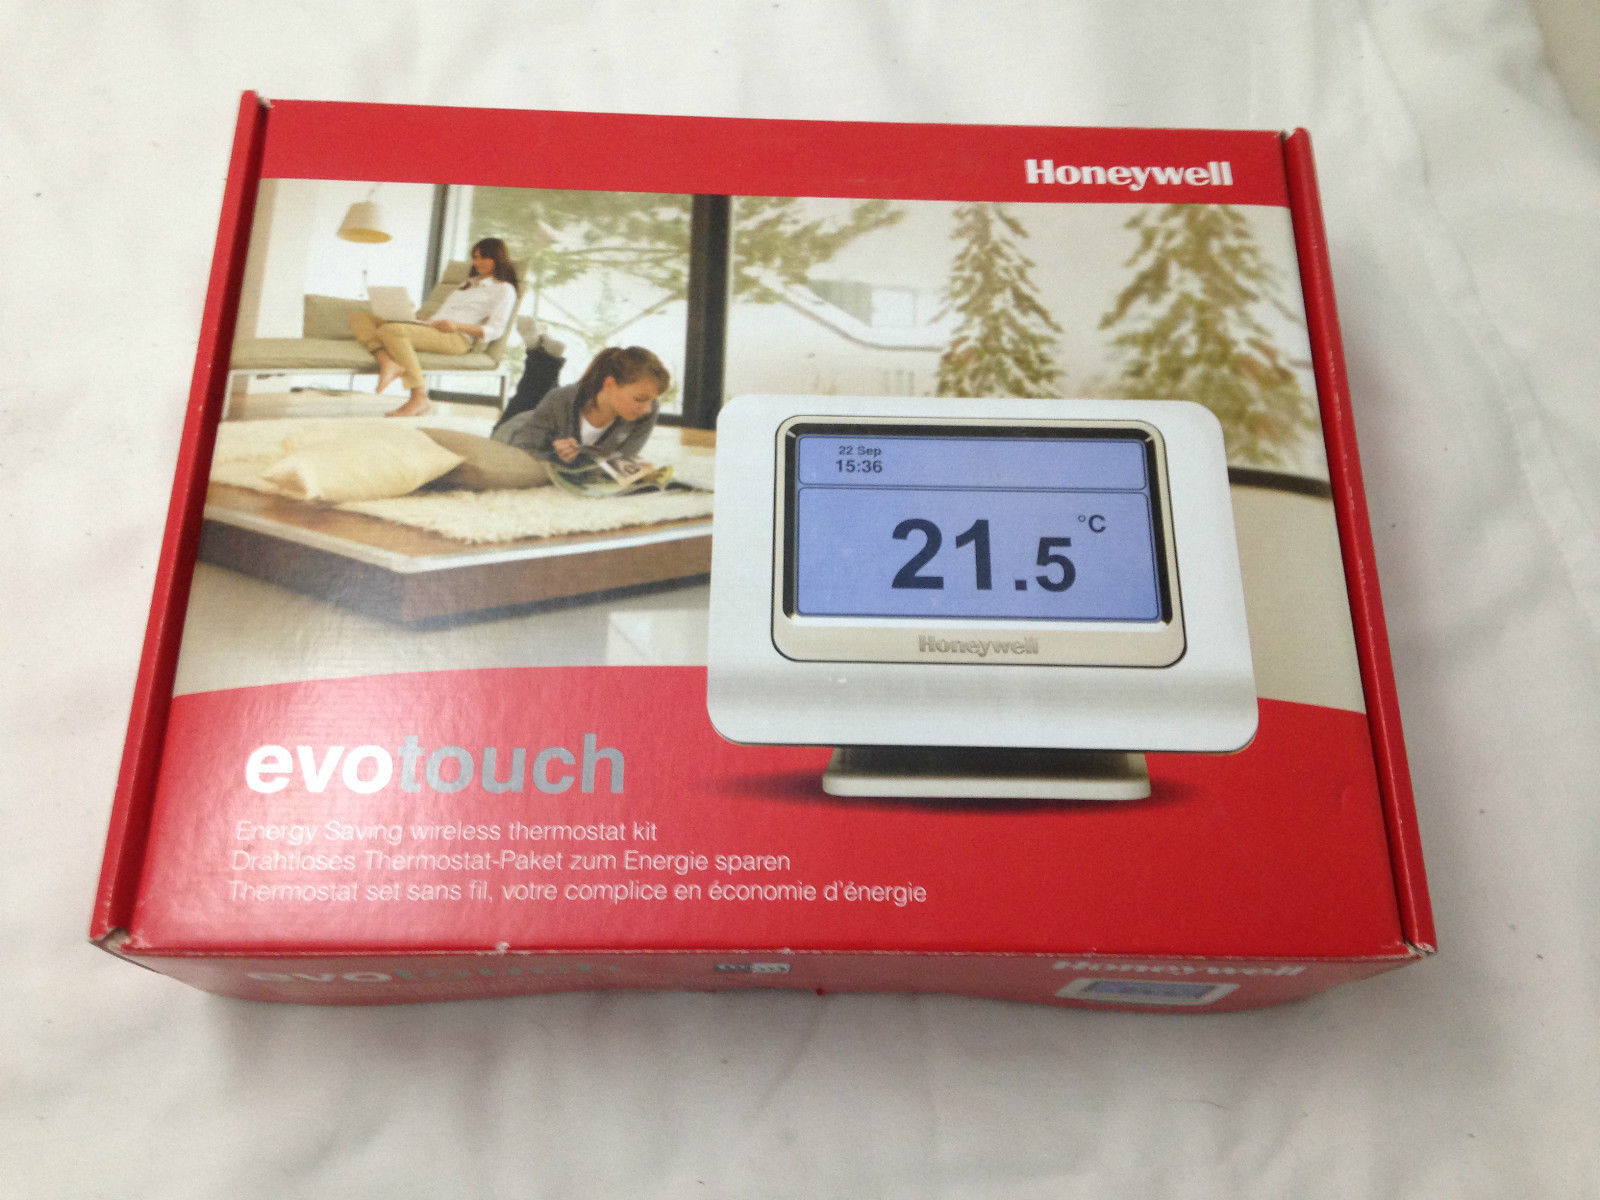 Honeywell-Evotouch-Wireless-Programmable-Thermostat-ATP921G1080-231742177887